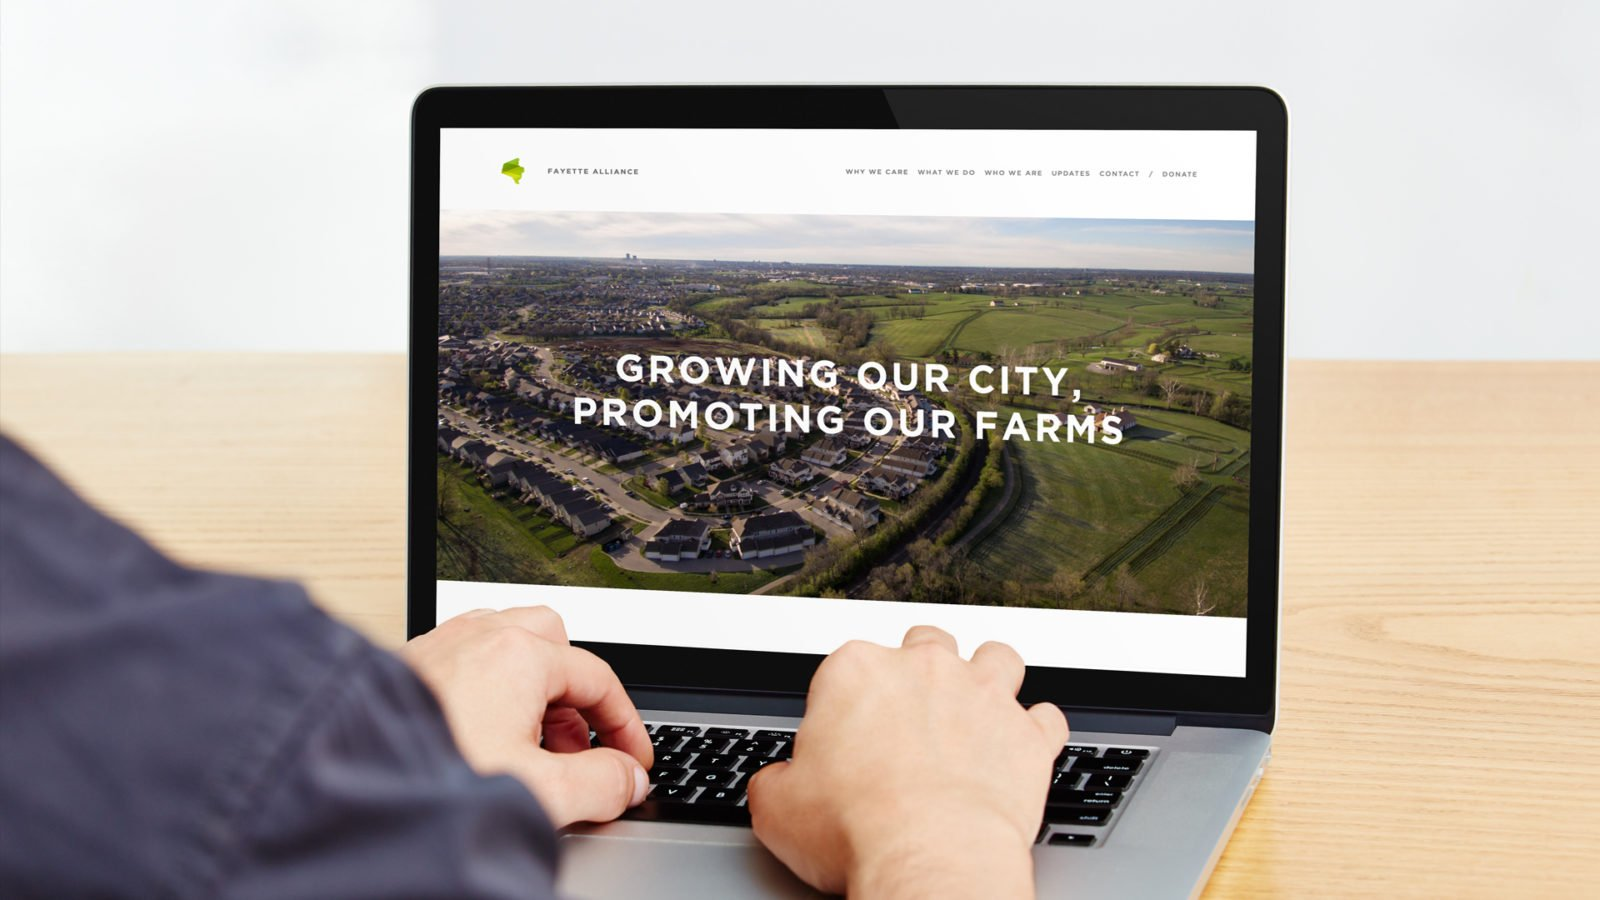 An Identity for the Fayette Alliance By Bullhorn Creative